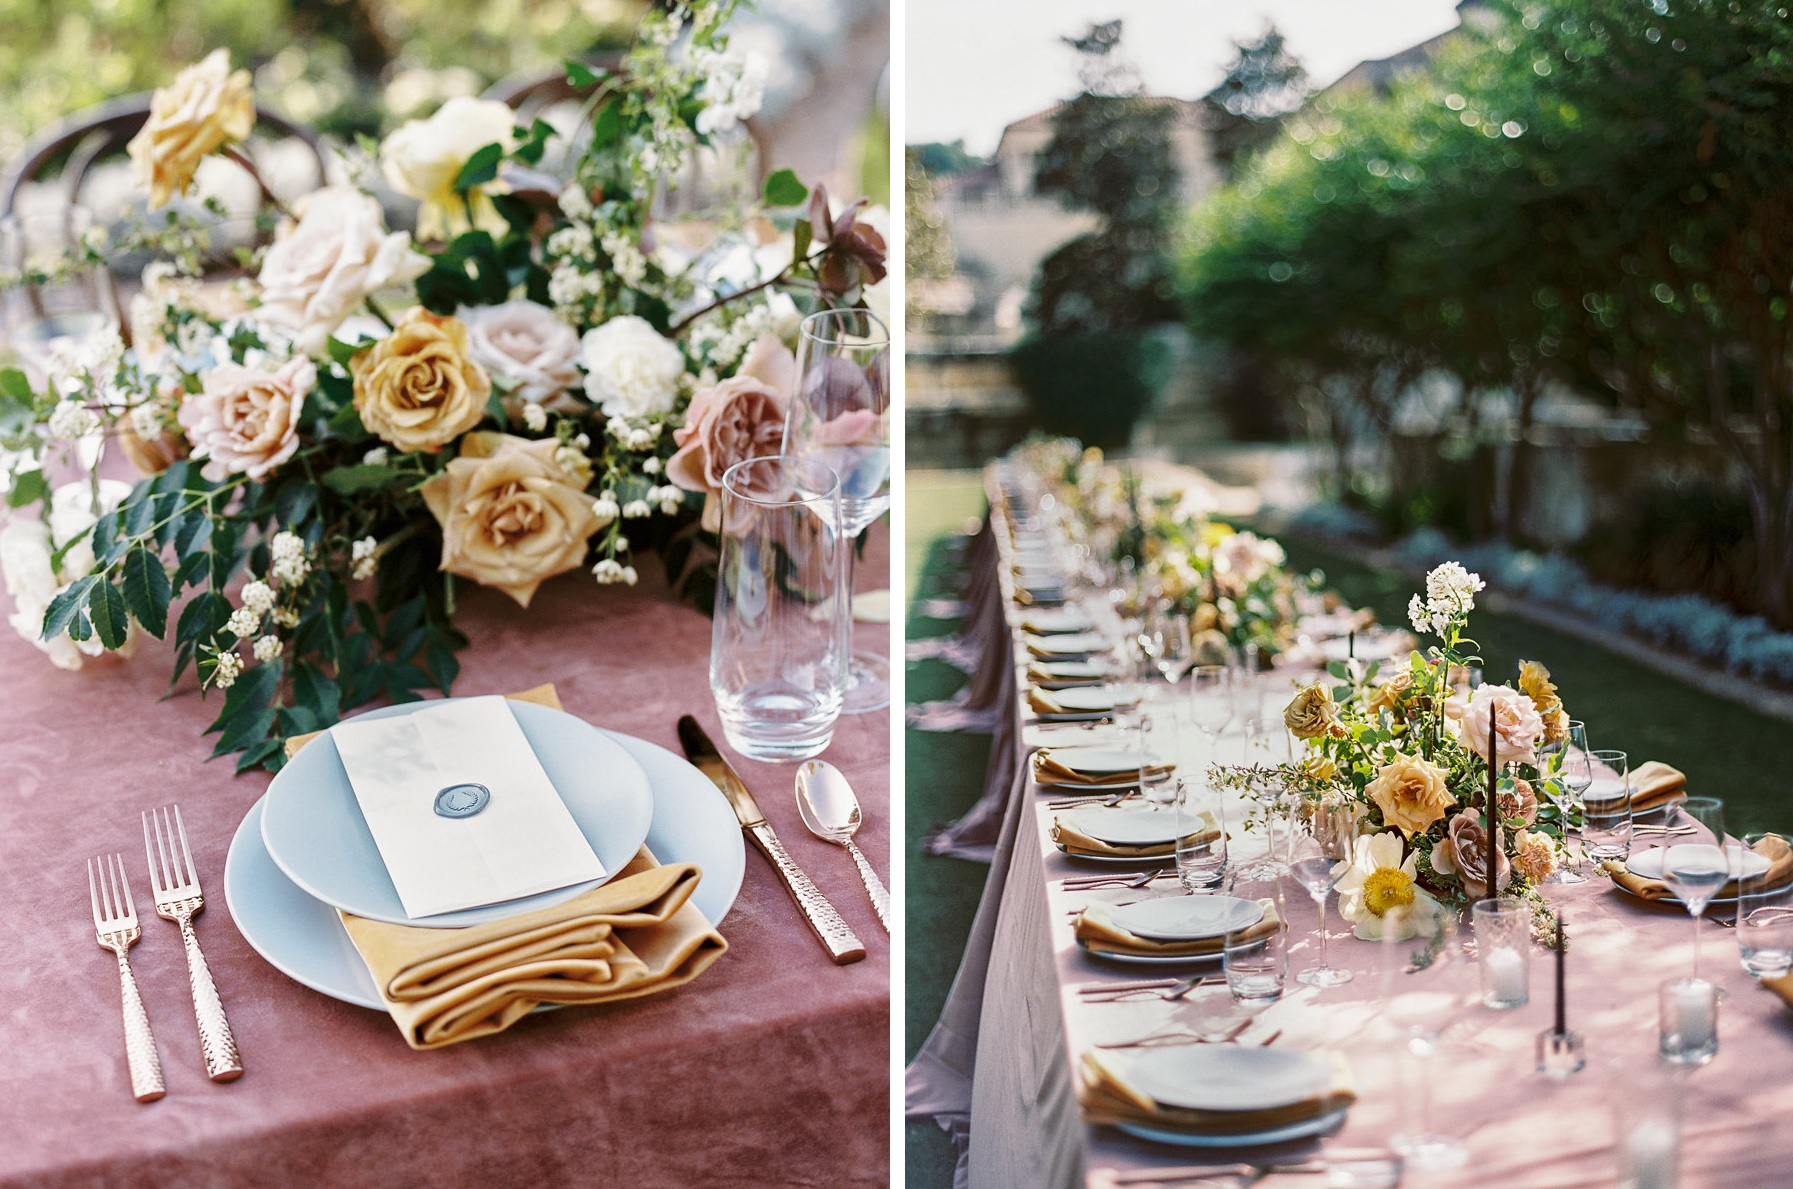 Charla_Jesse_Villa_Del_Lago_Austin_Texas_Apryl_Ann_Photography_The_Southern_Table 13.jpg